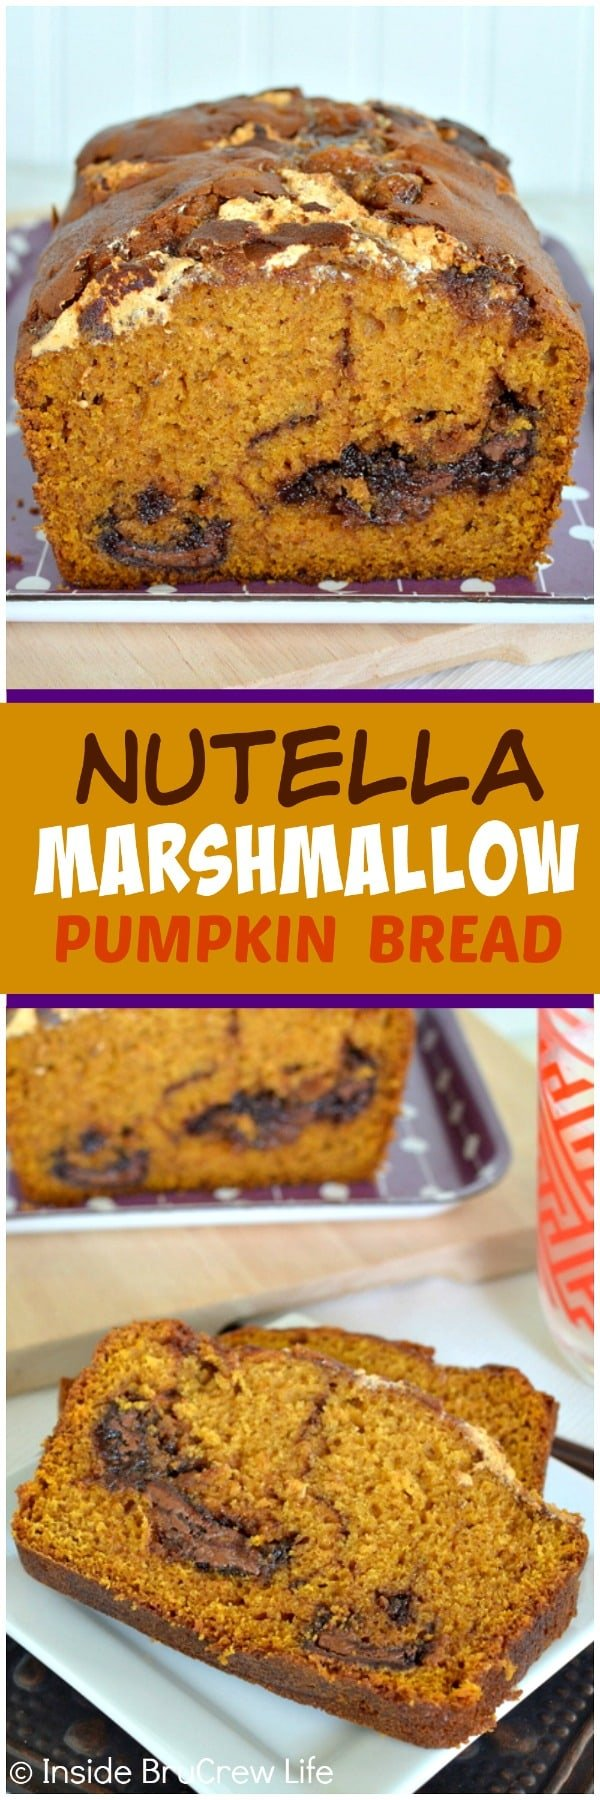 Nutella Marshmallow Pumpkin Bread - swirls of chocolate and marshmallow make this easy sweet bread a delicious fall breakfast recipe.